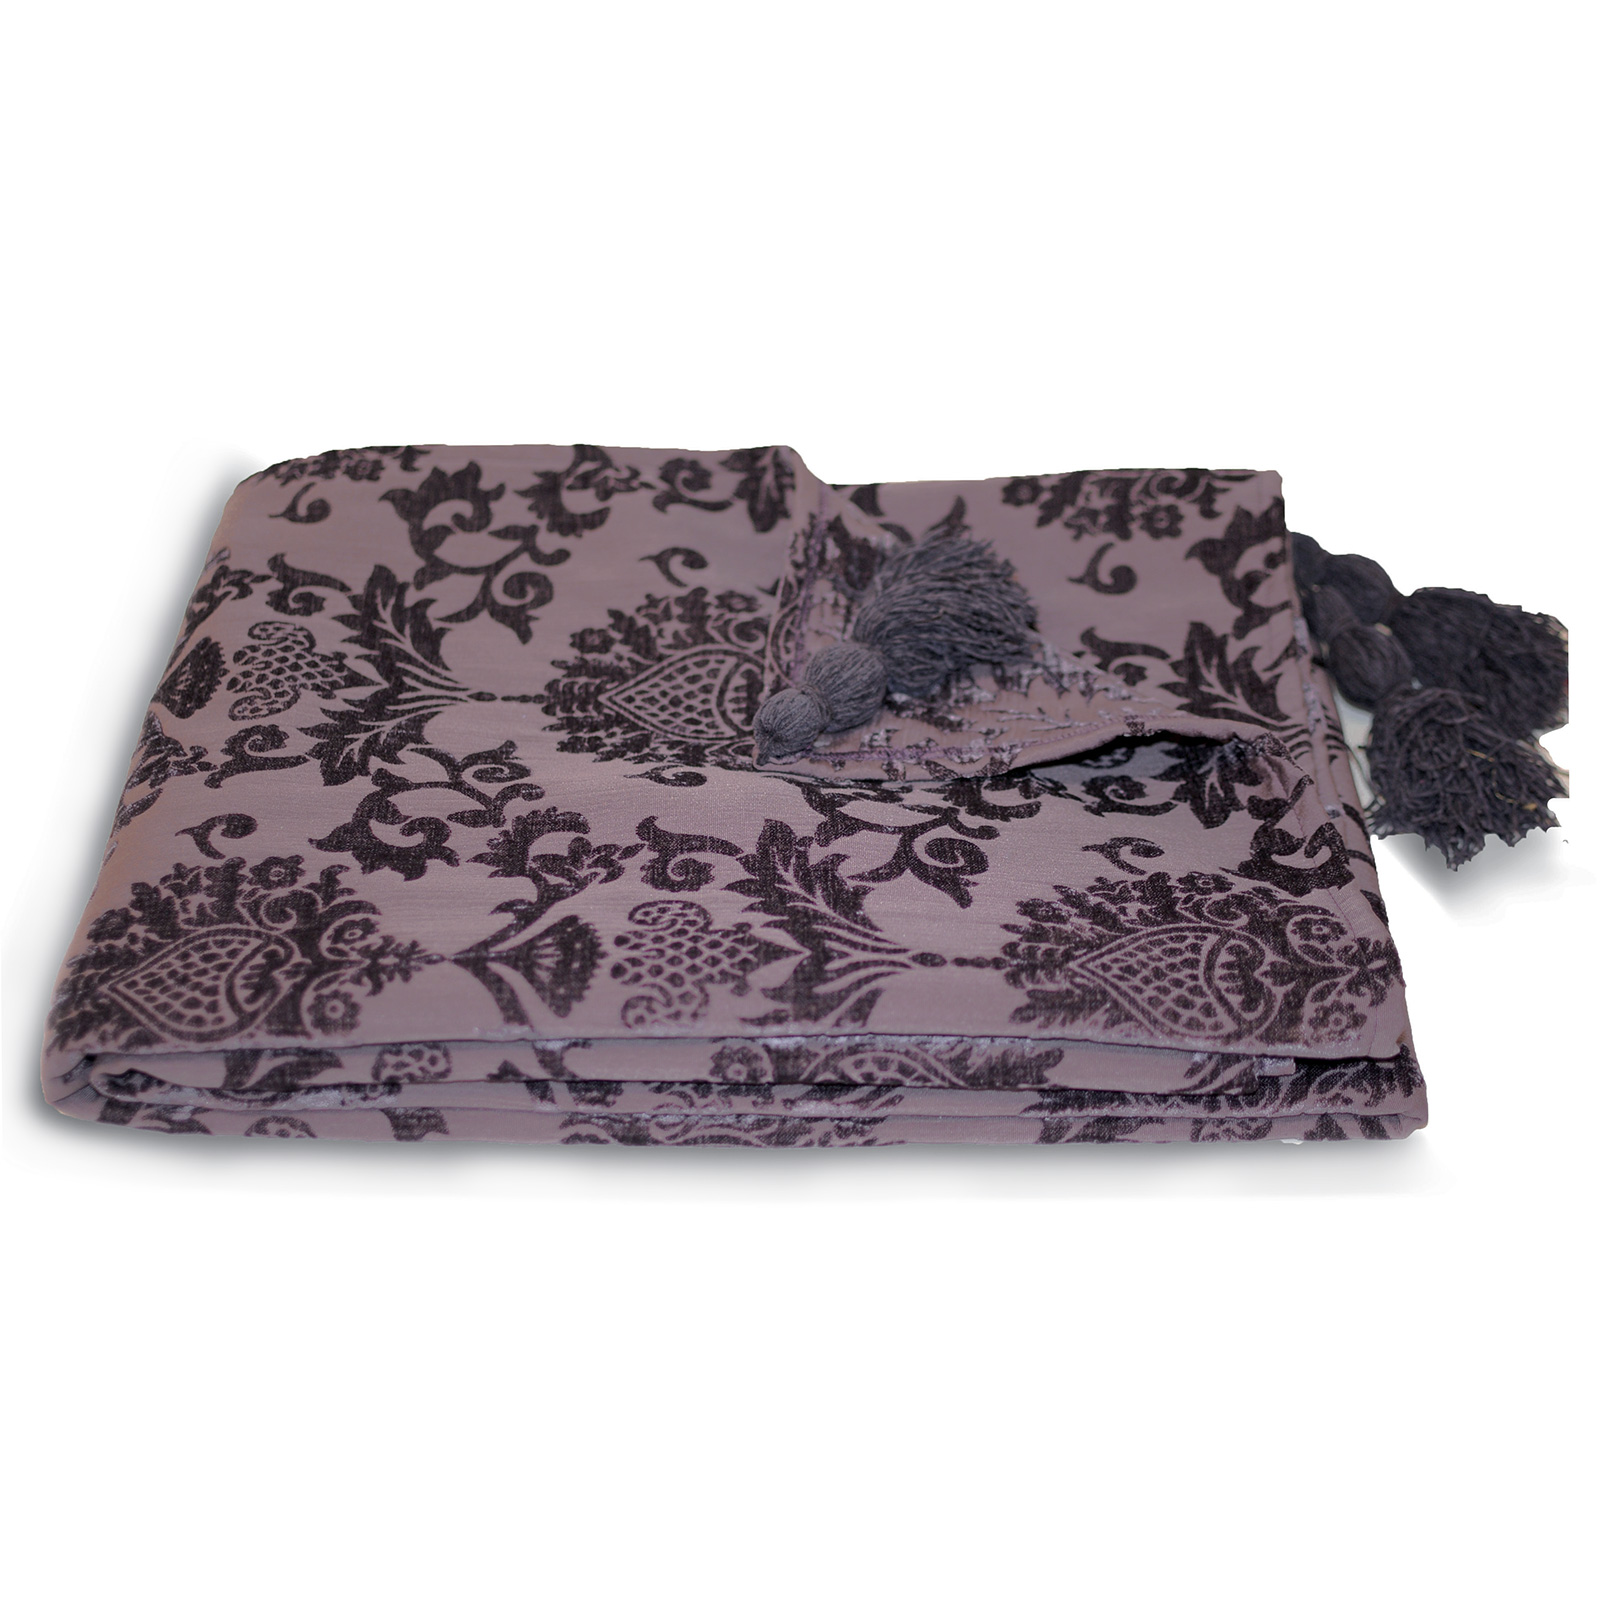 Damask chenille throw over paoletti modern bed blanket sofa throw 135 x 180 cm ebay Throw blankets for sofa